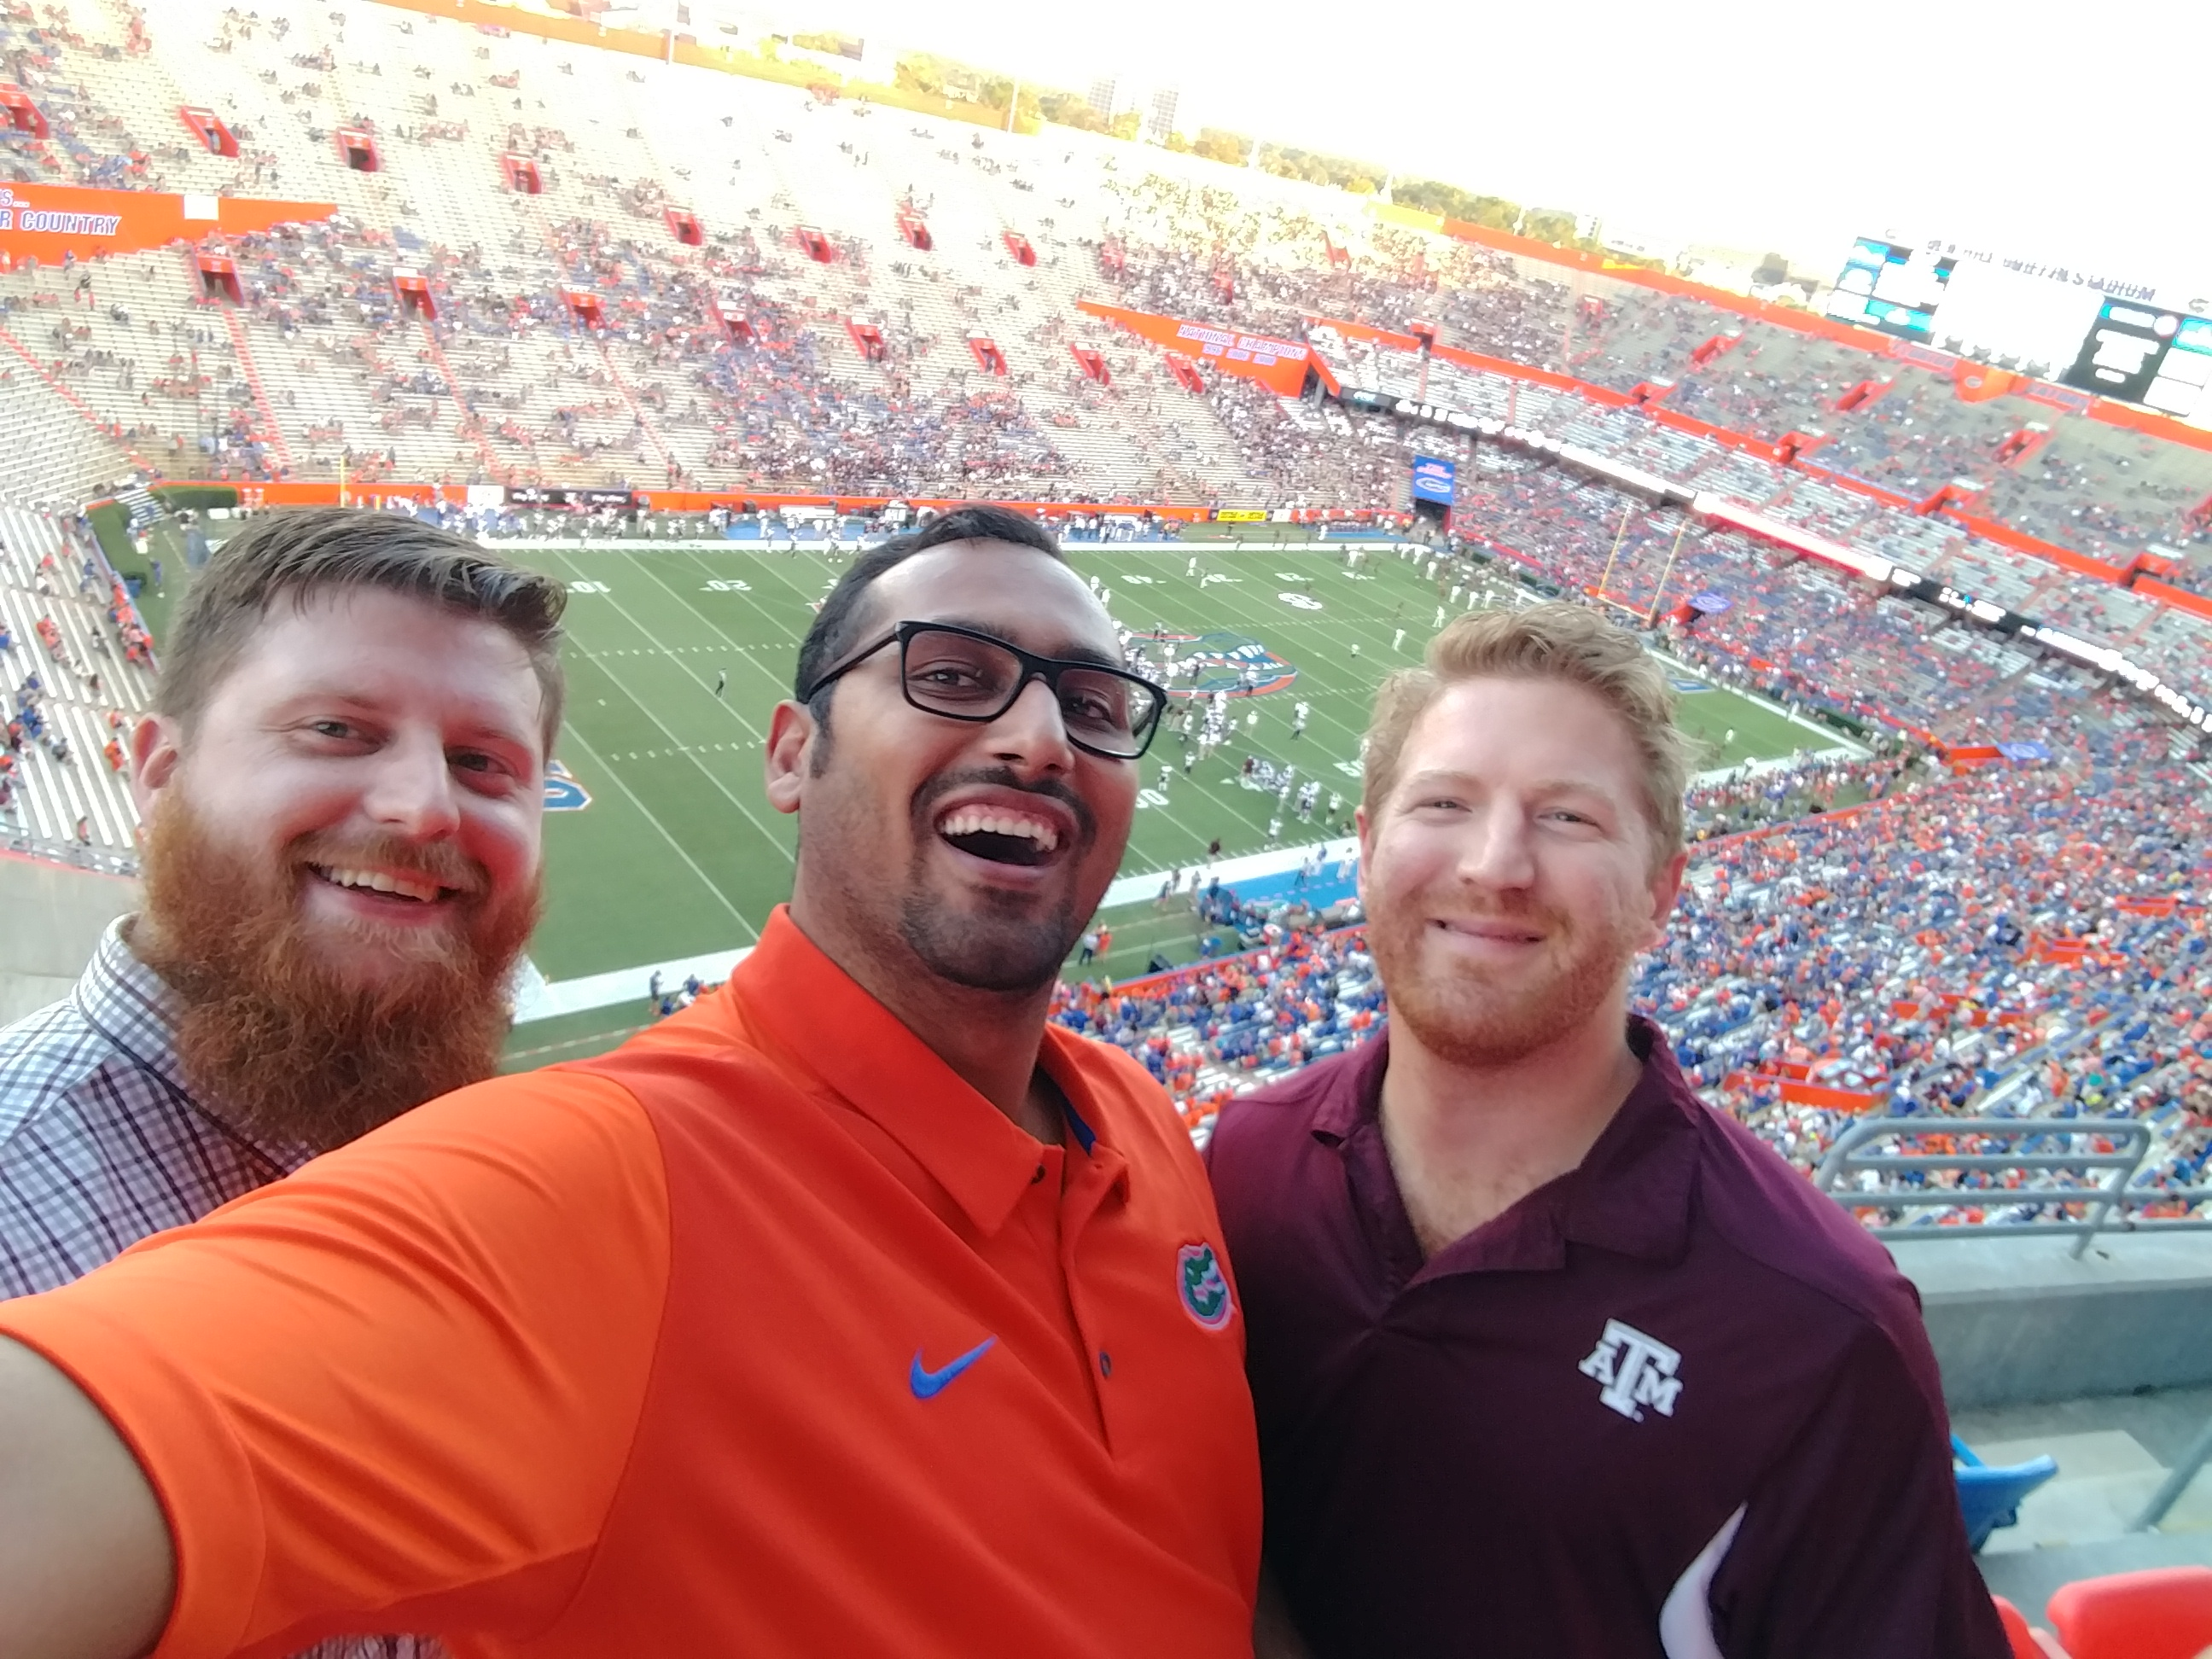 At the Gator Game with Jared, Aaron, and friends